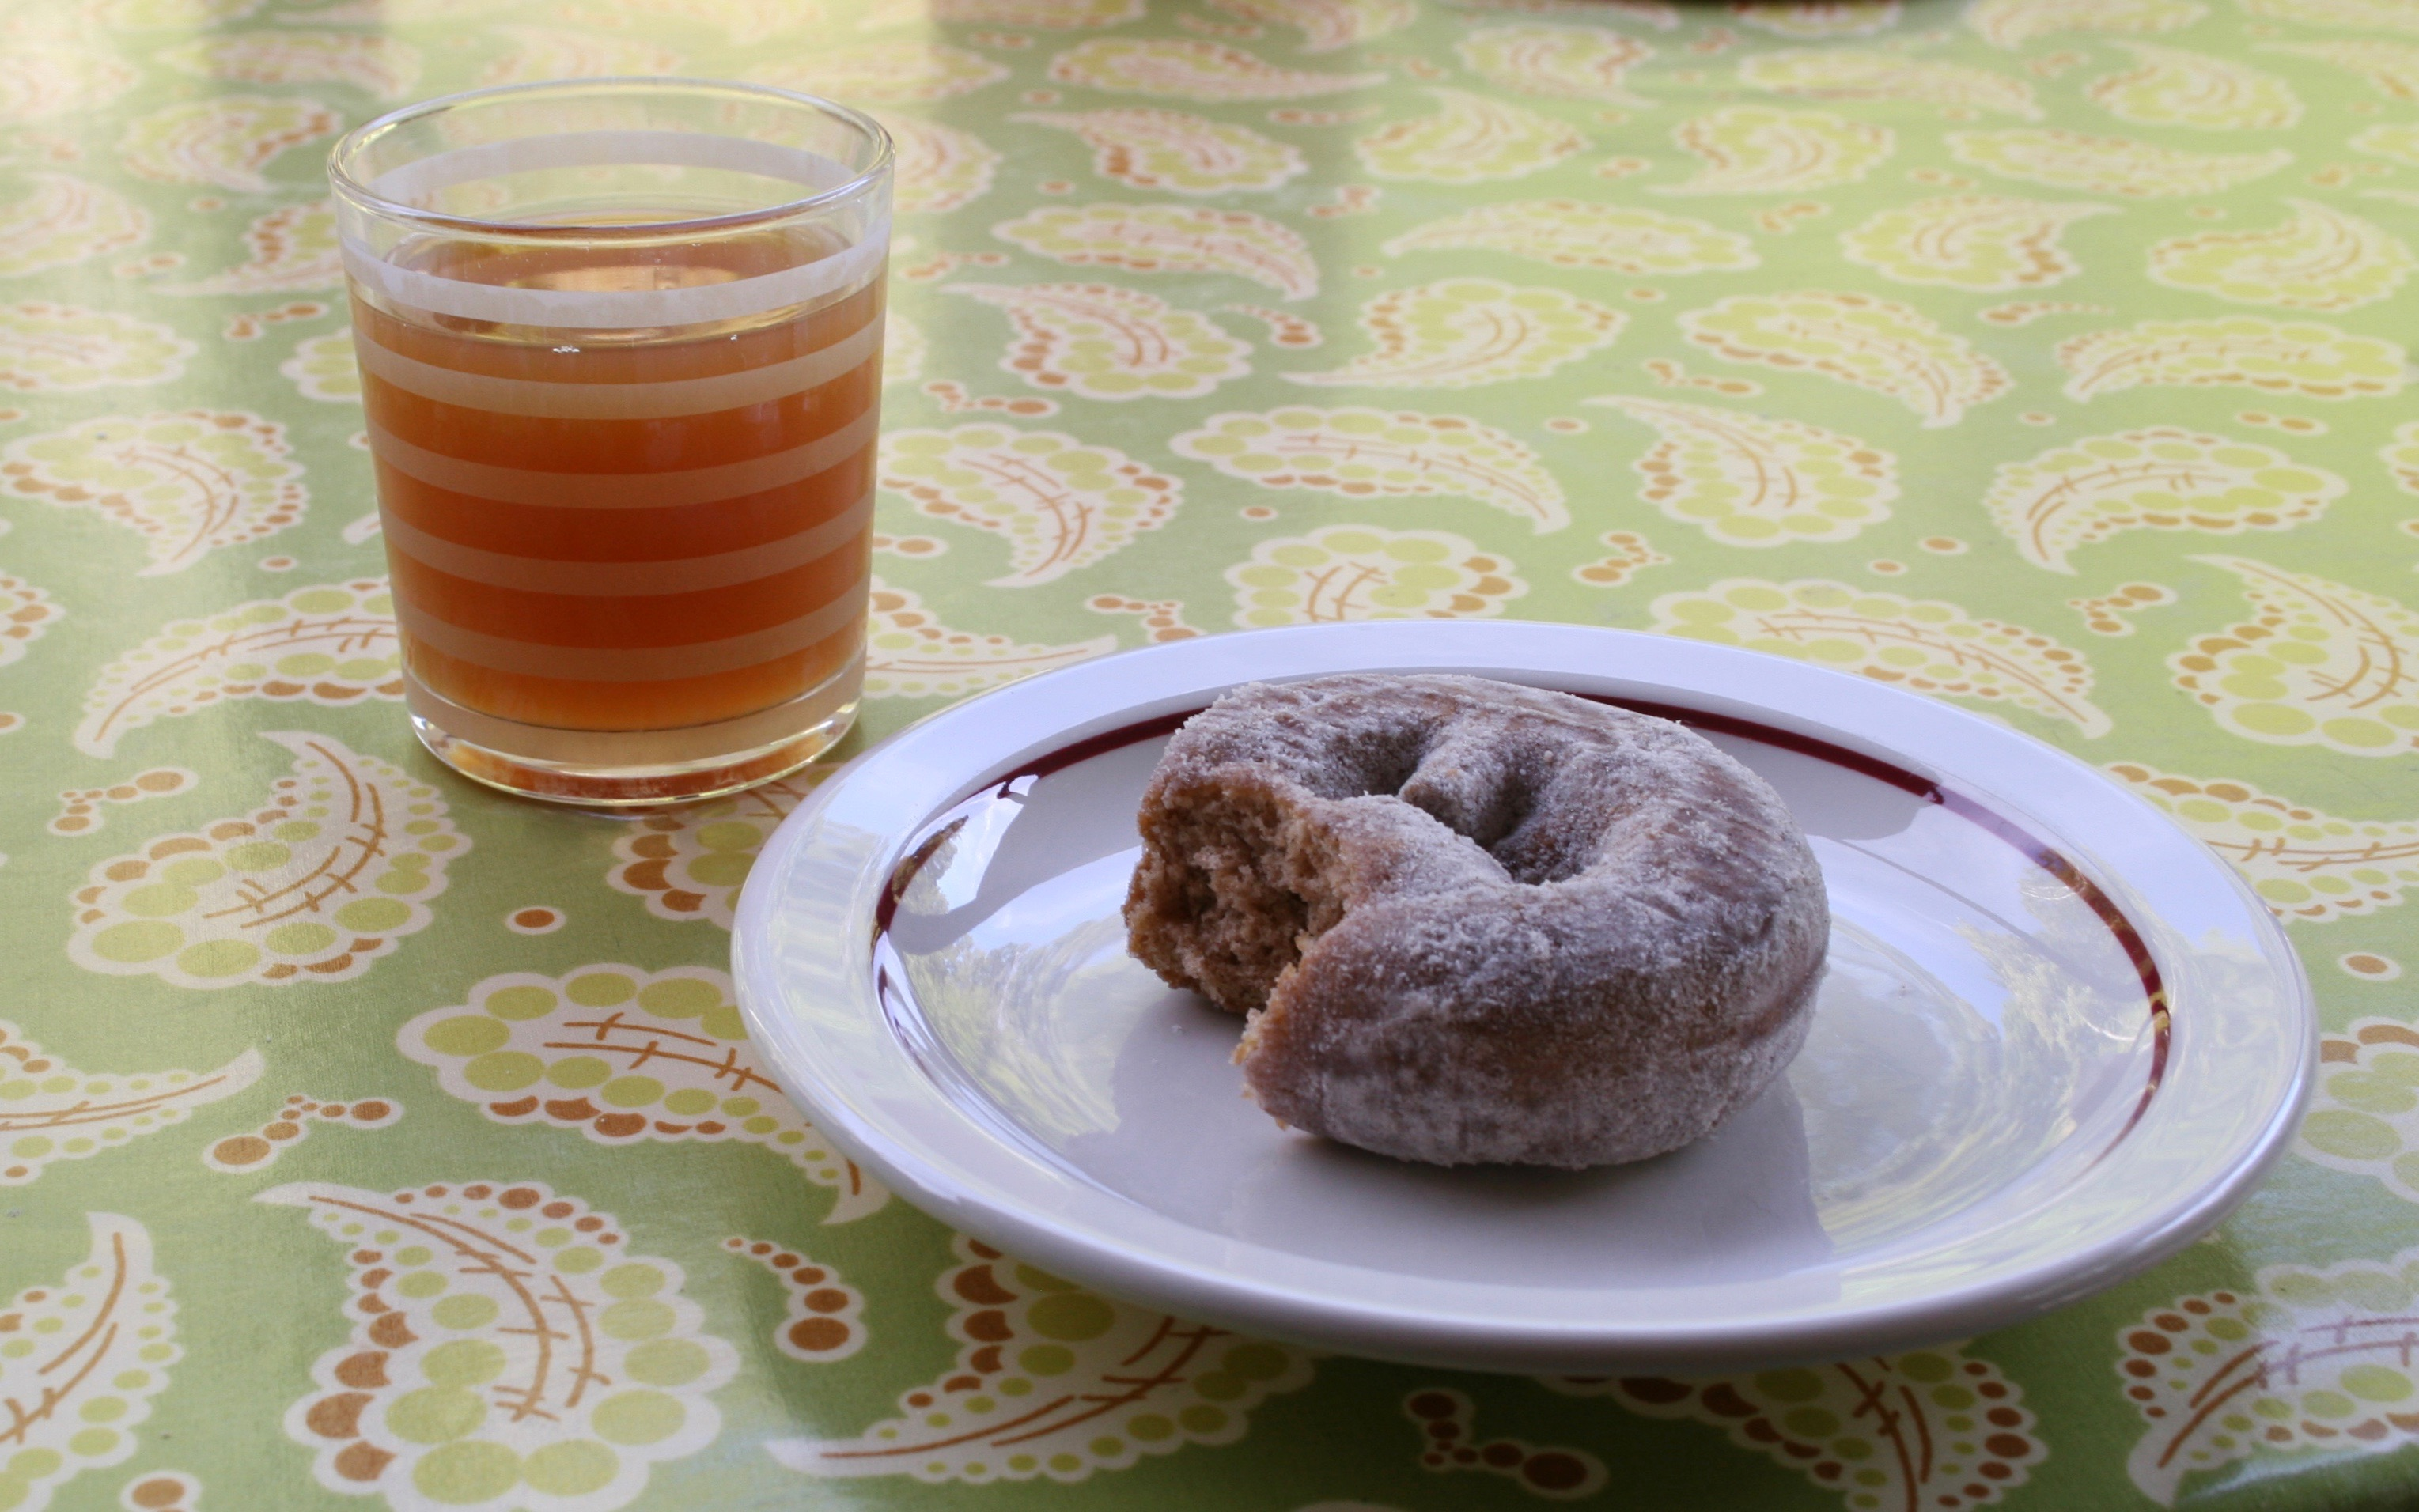 cider and cider donut